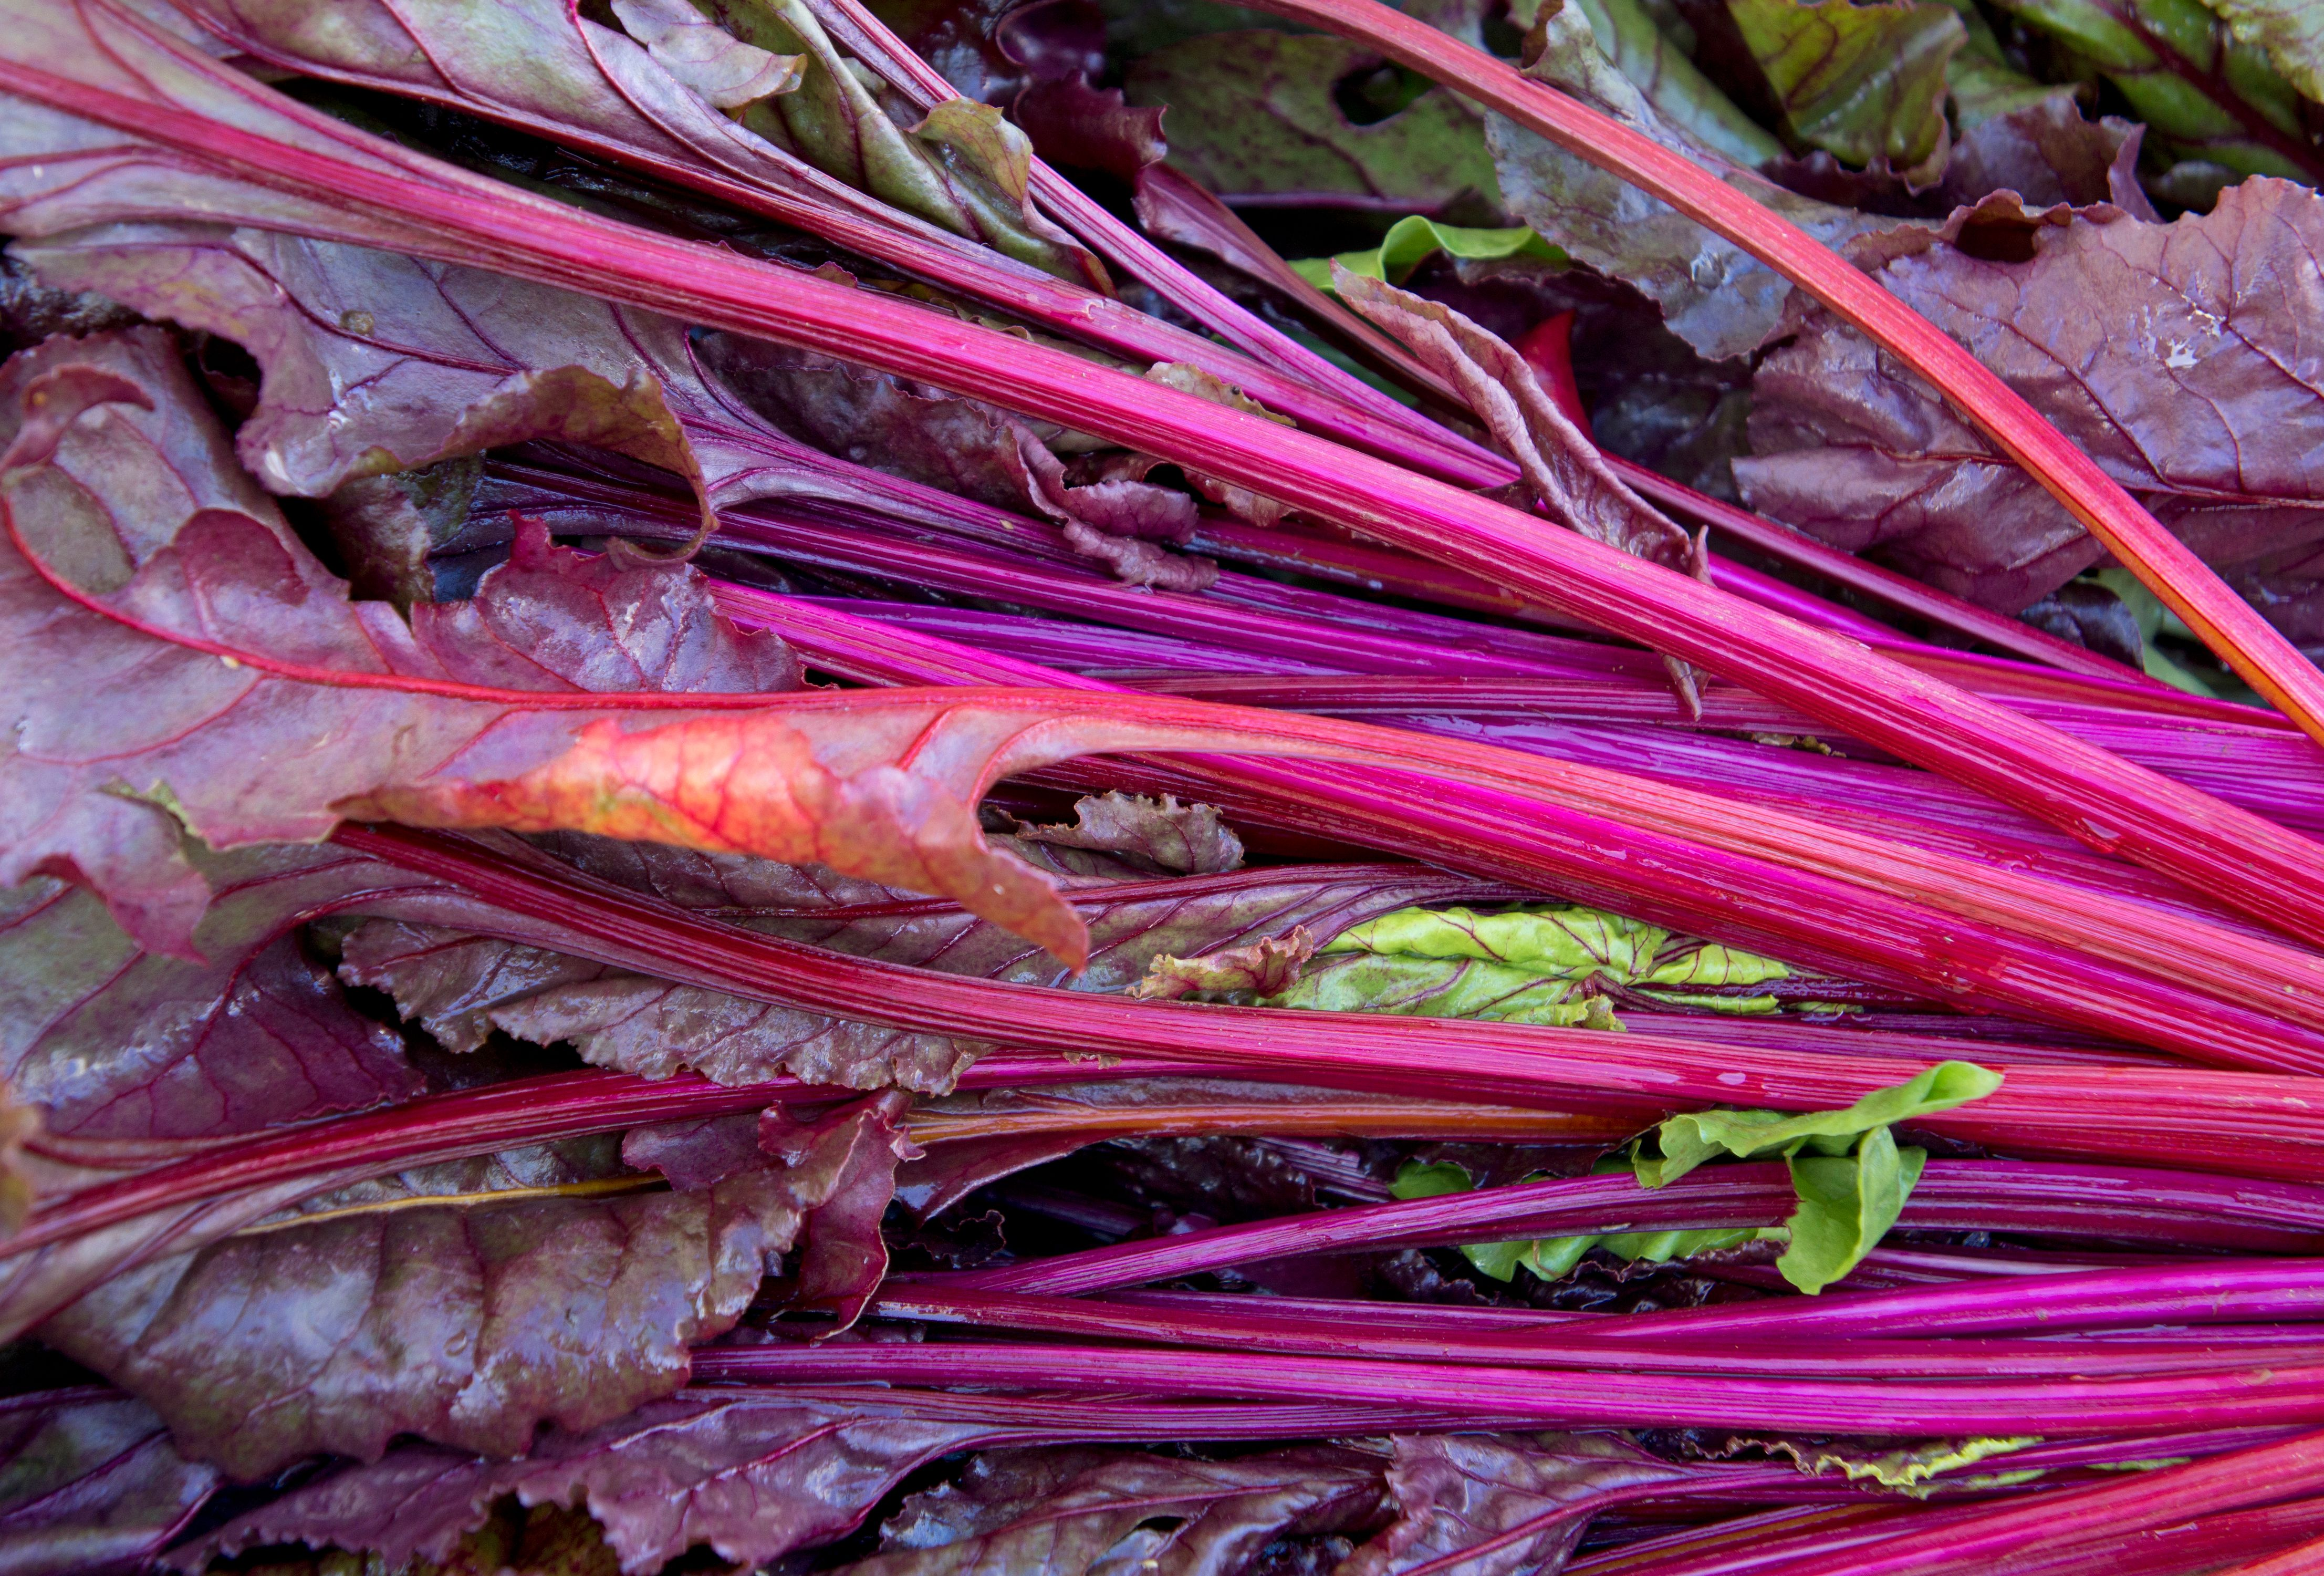 Chard Stems and Leaves